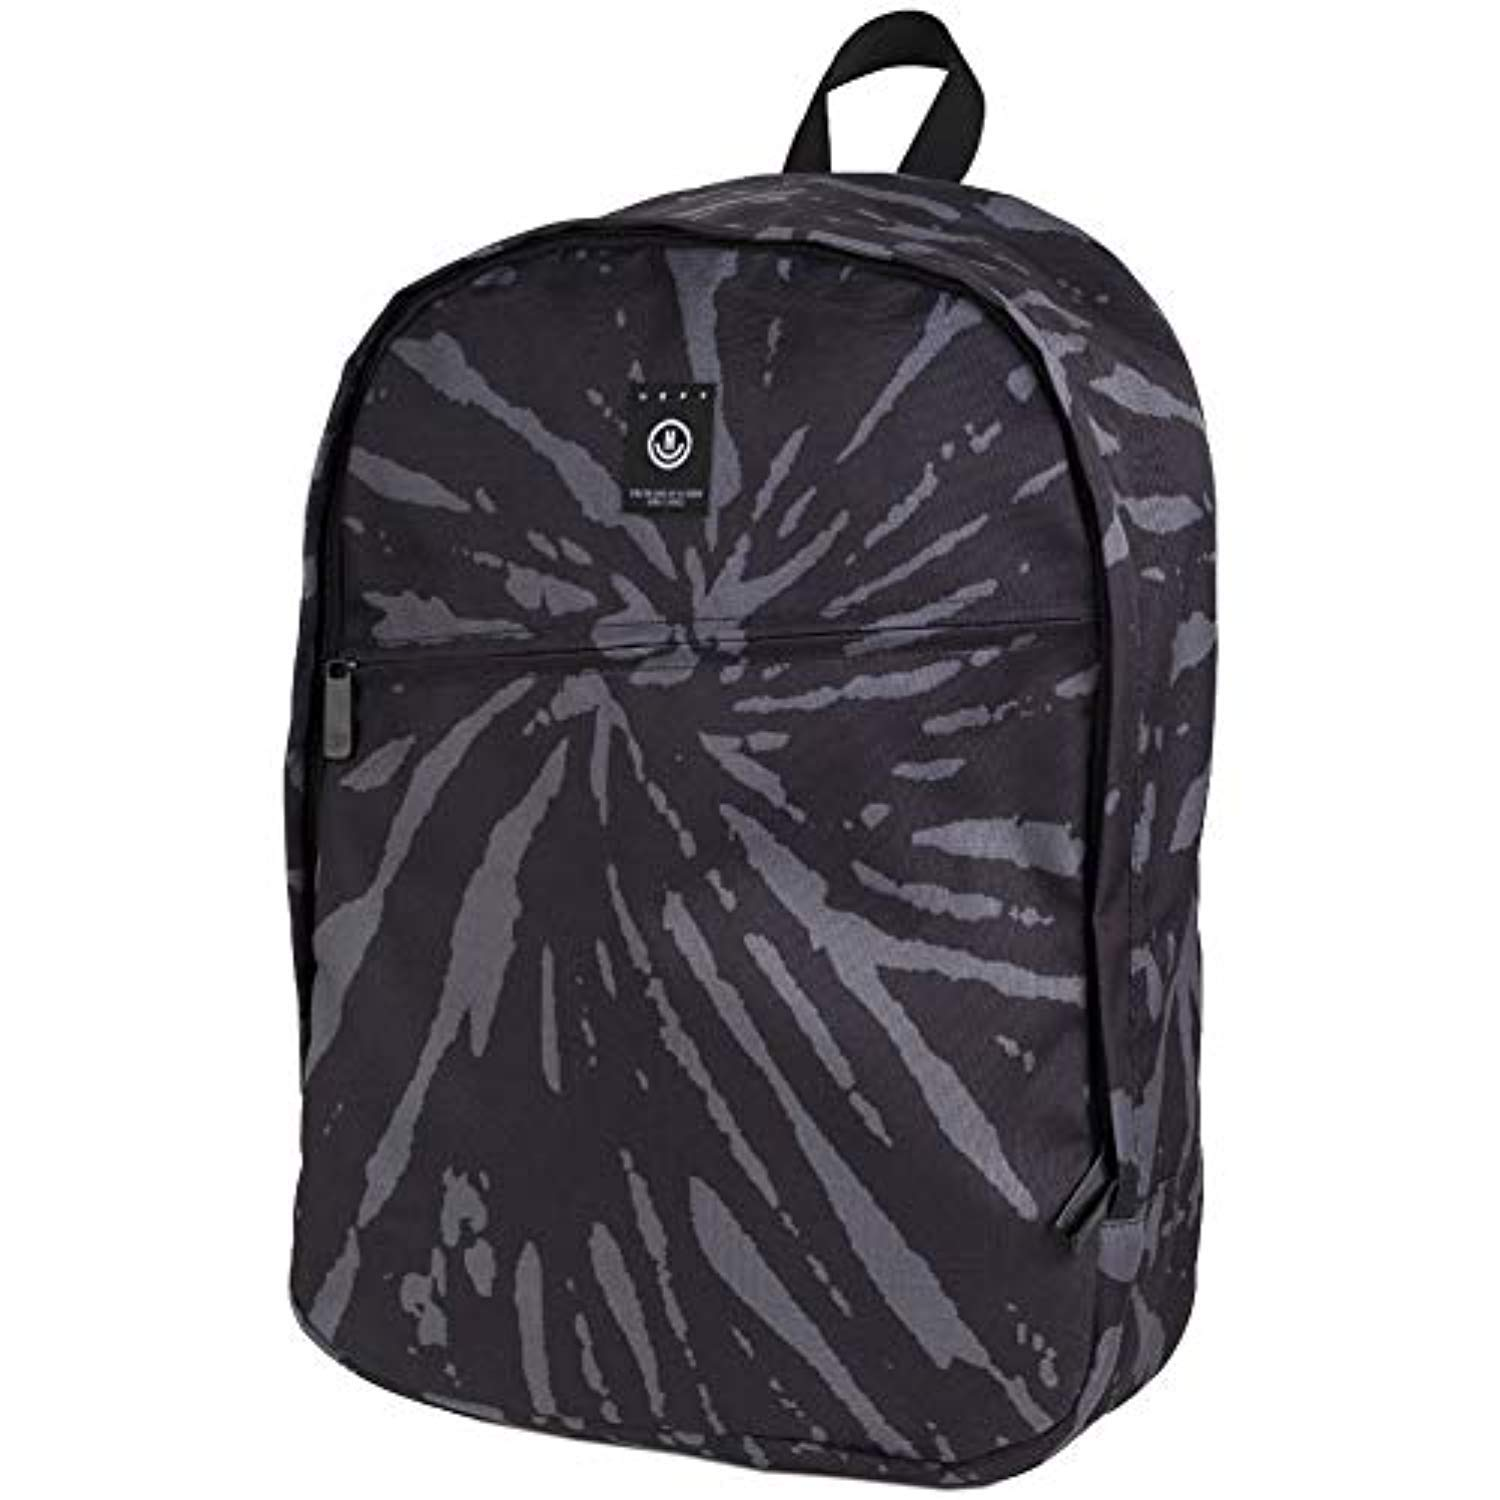 14f7d2a57 Amazon.com: neff Men's Daily Backpack, black/tie dye One Size: Clothing